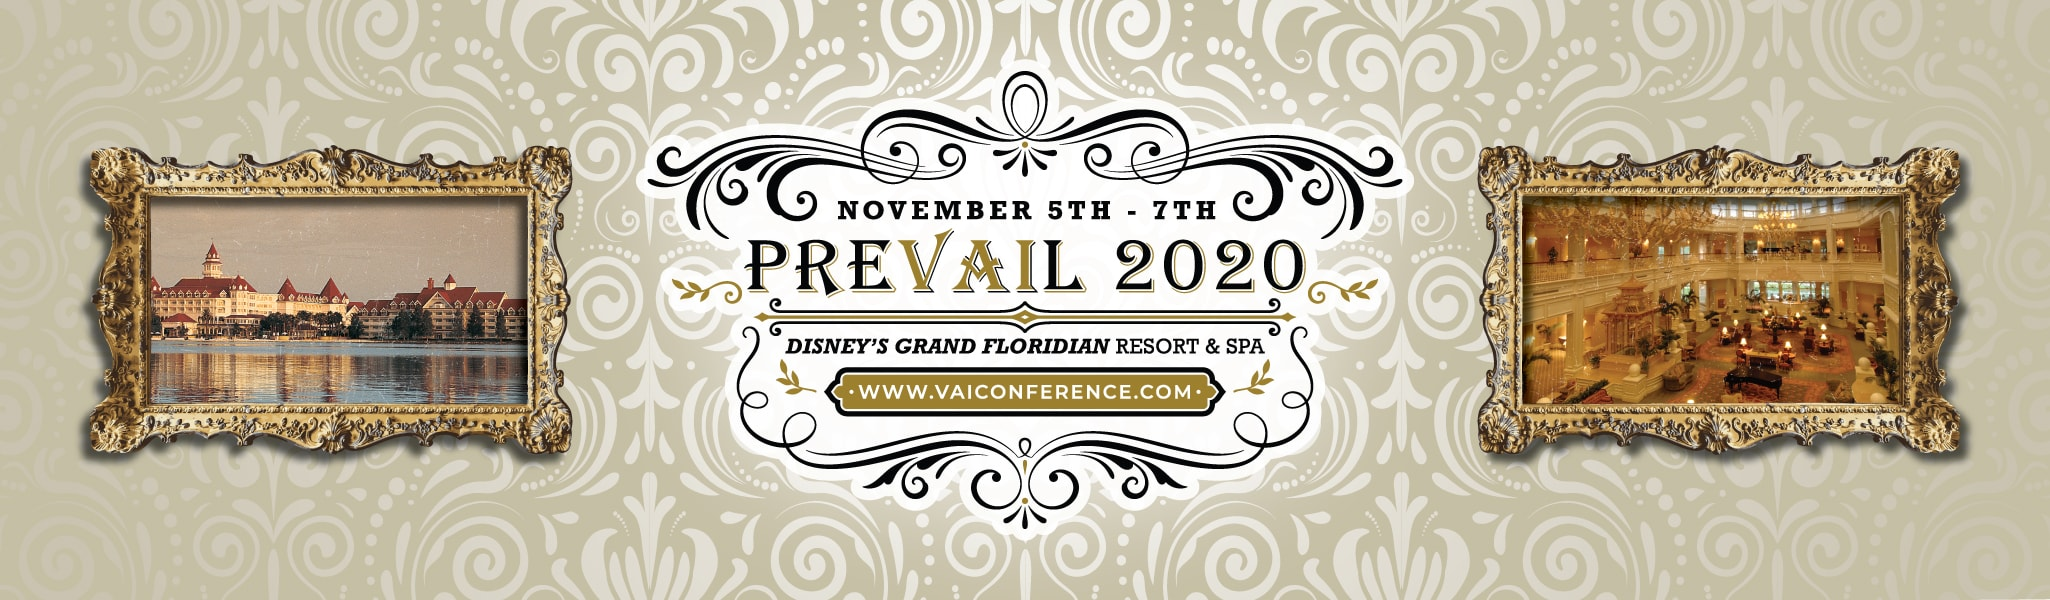 Prevail 2020 | Save the Date November 5th-7th Disney's Grand Floridian Resort & Spa